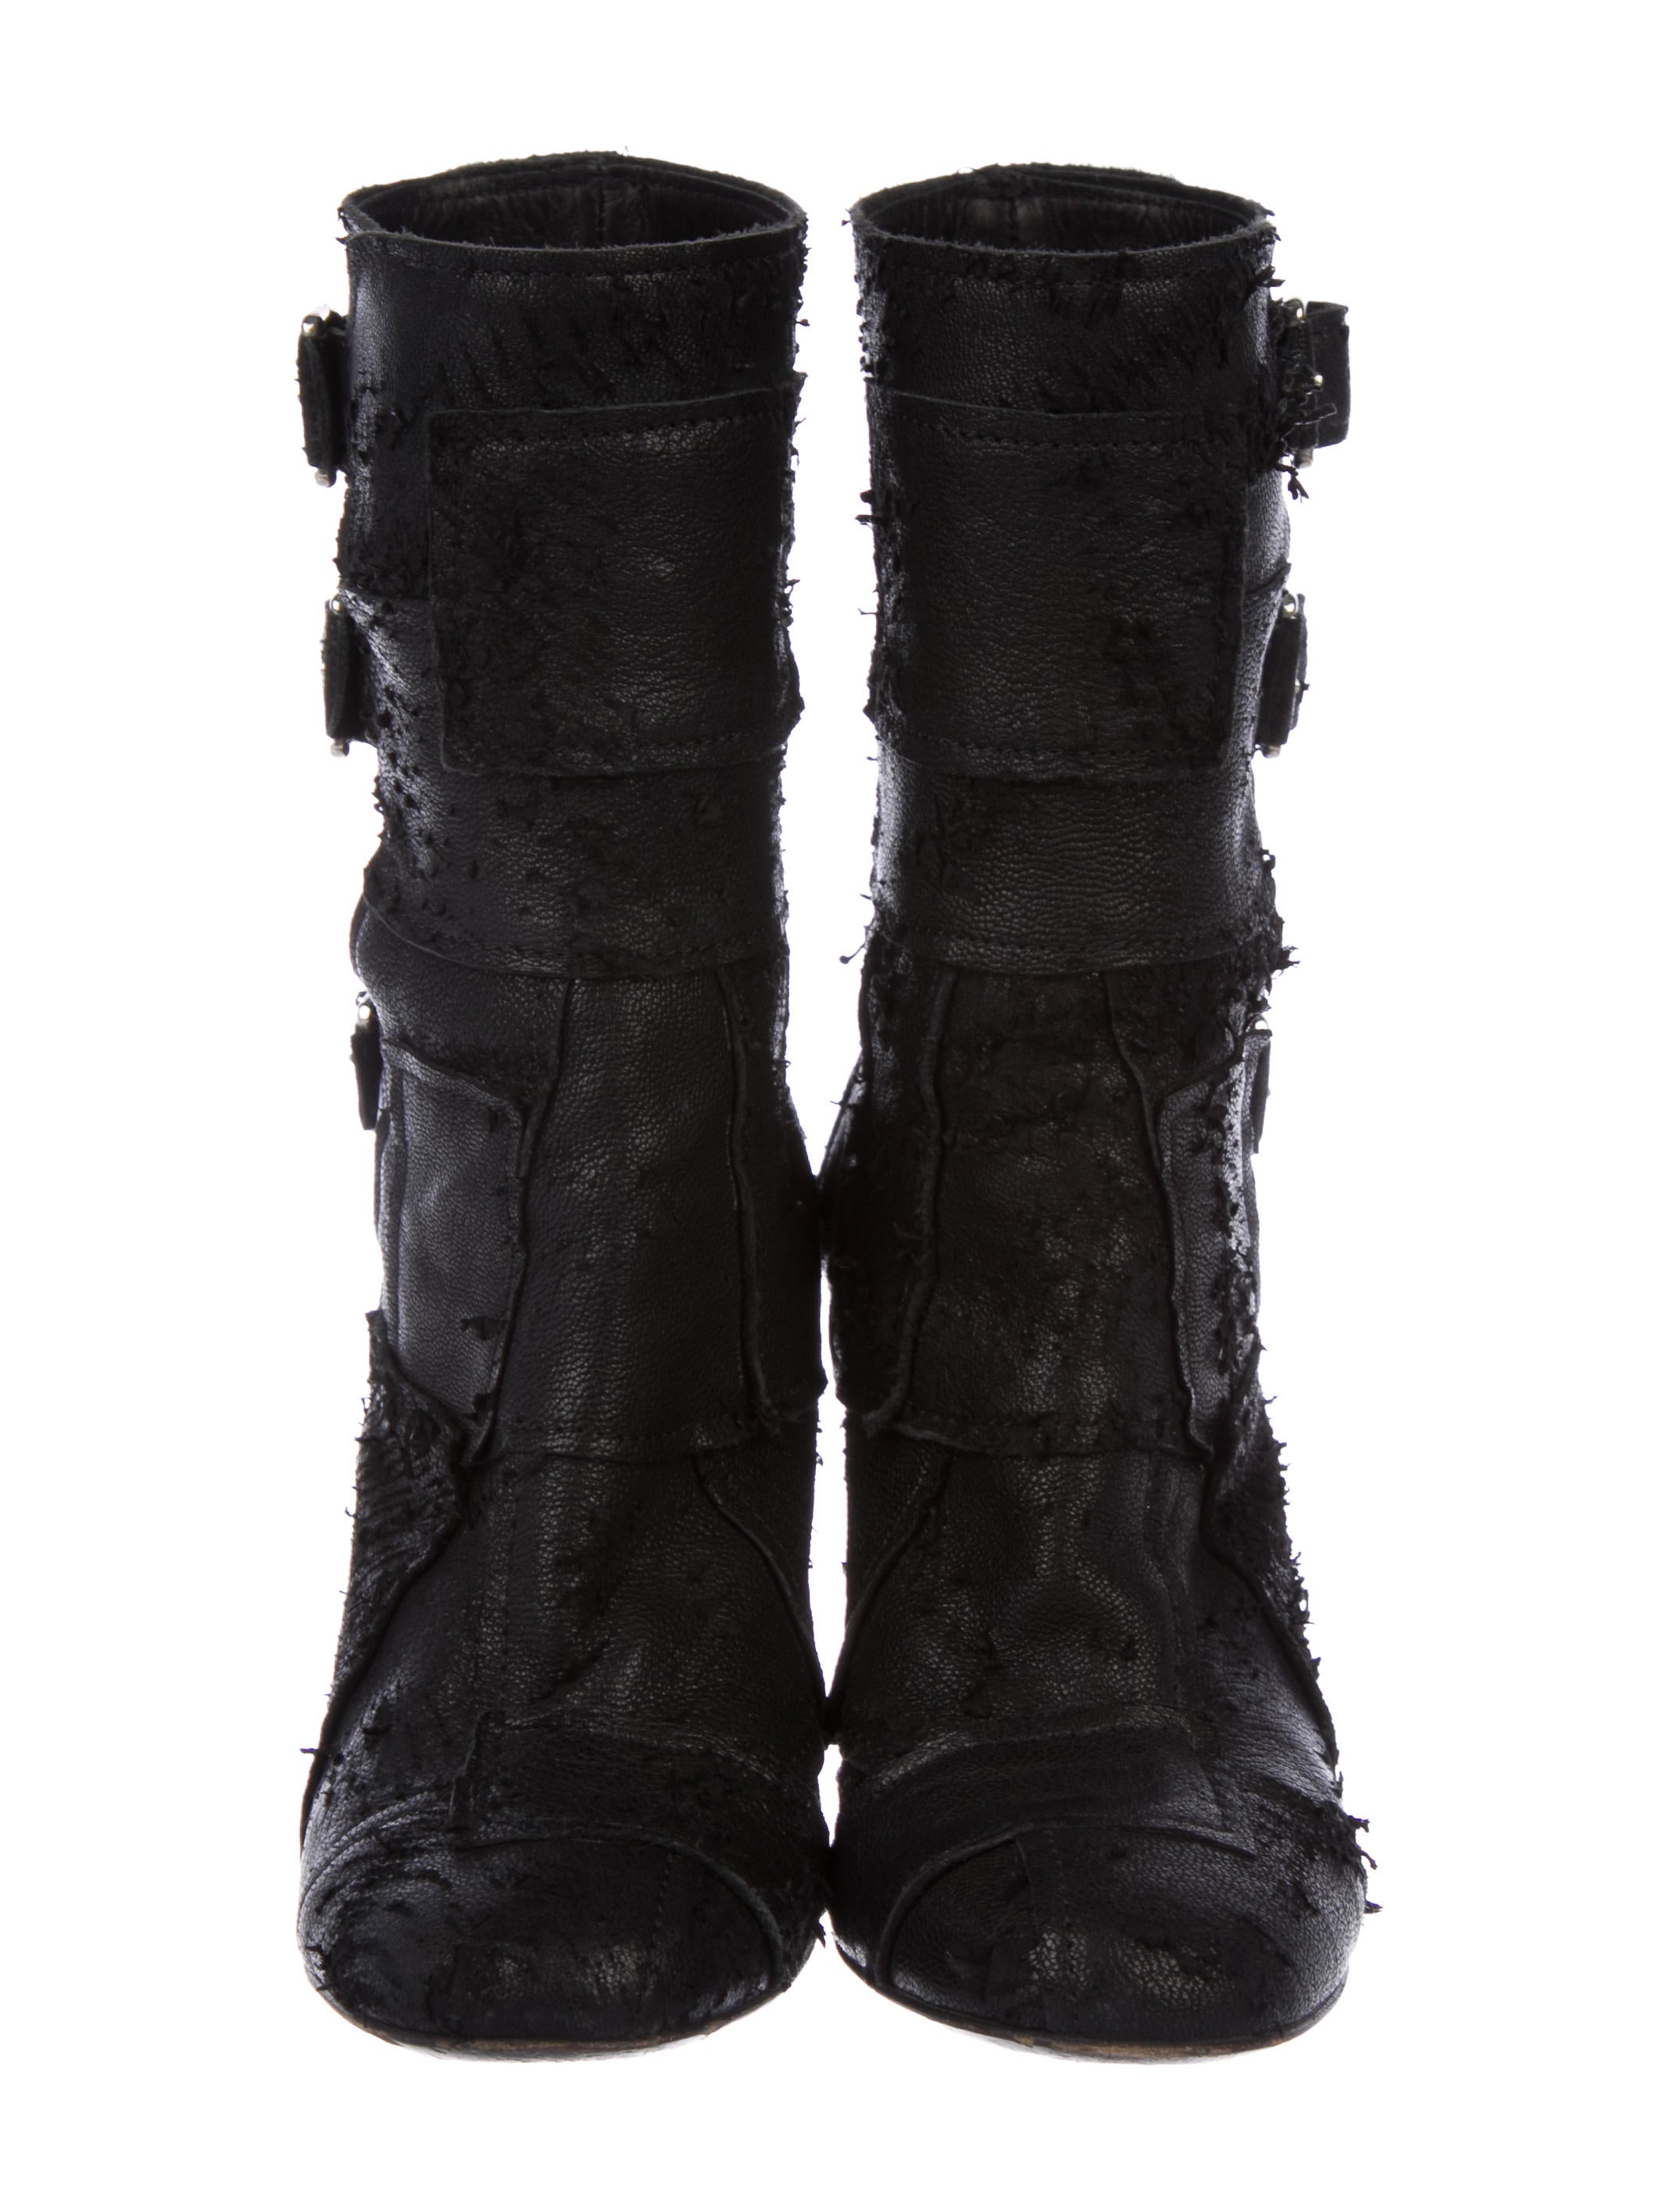 clearance really Laurence Dacade Distress Mid-Calf Boots finishline cheap sale in China sale low shipping fee cheap sale release dates Nl6QqK